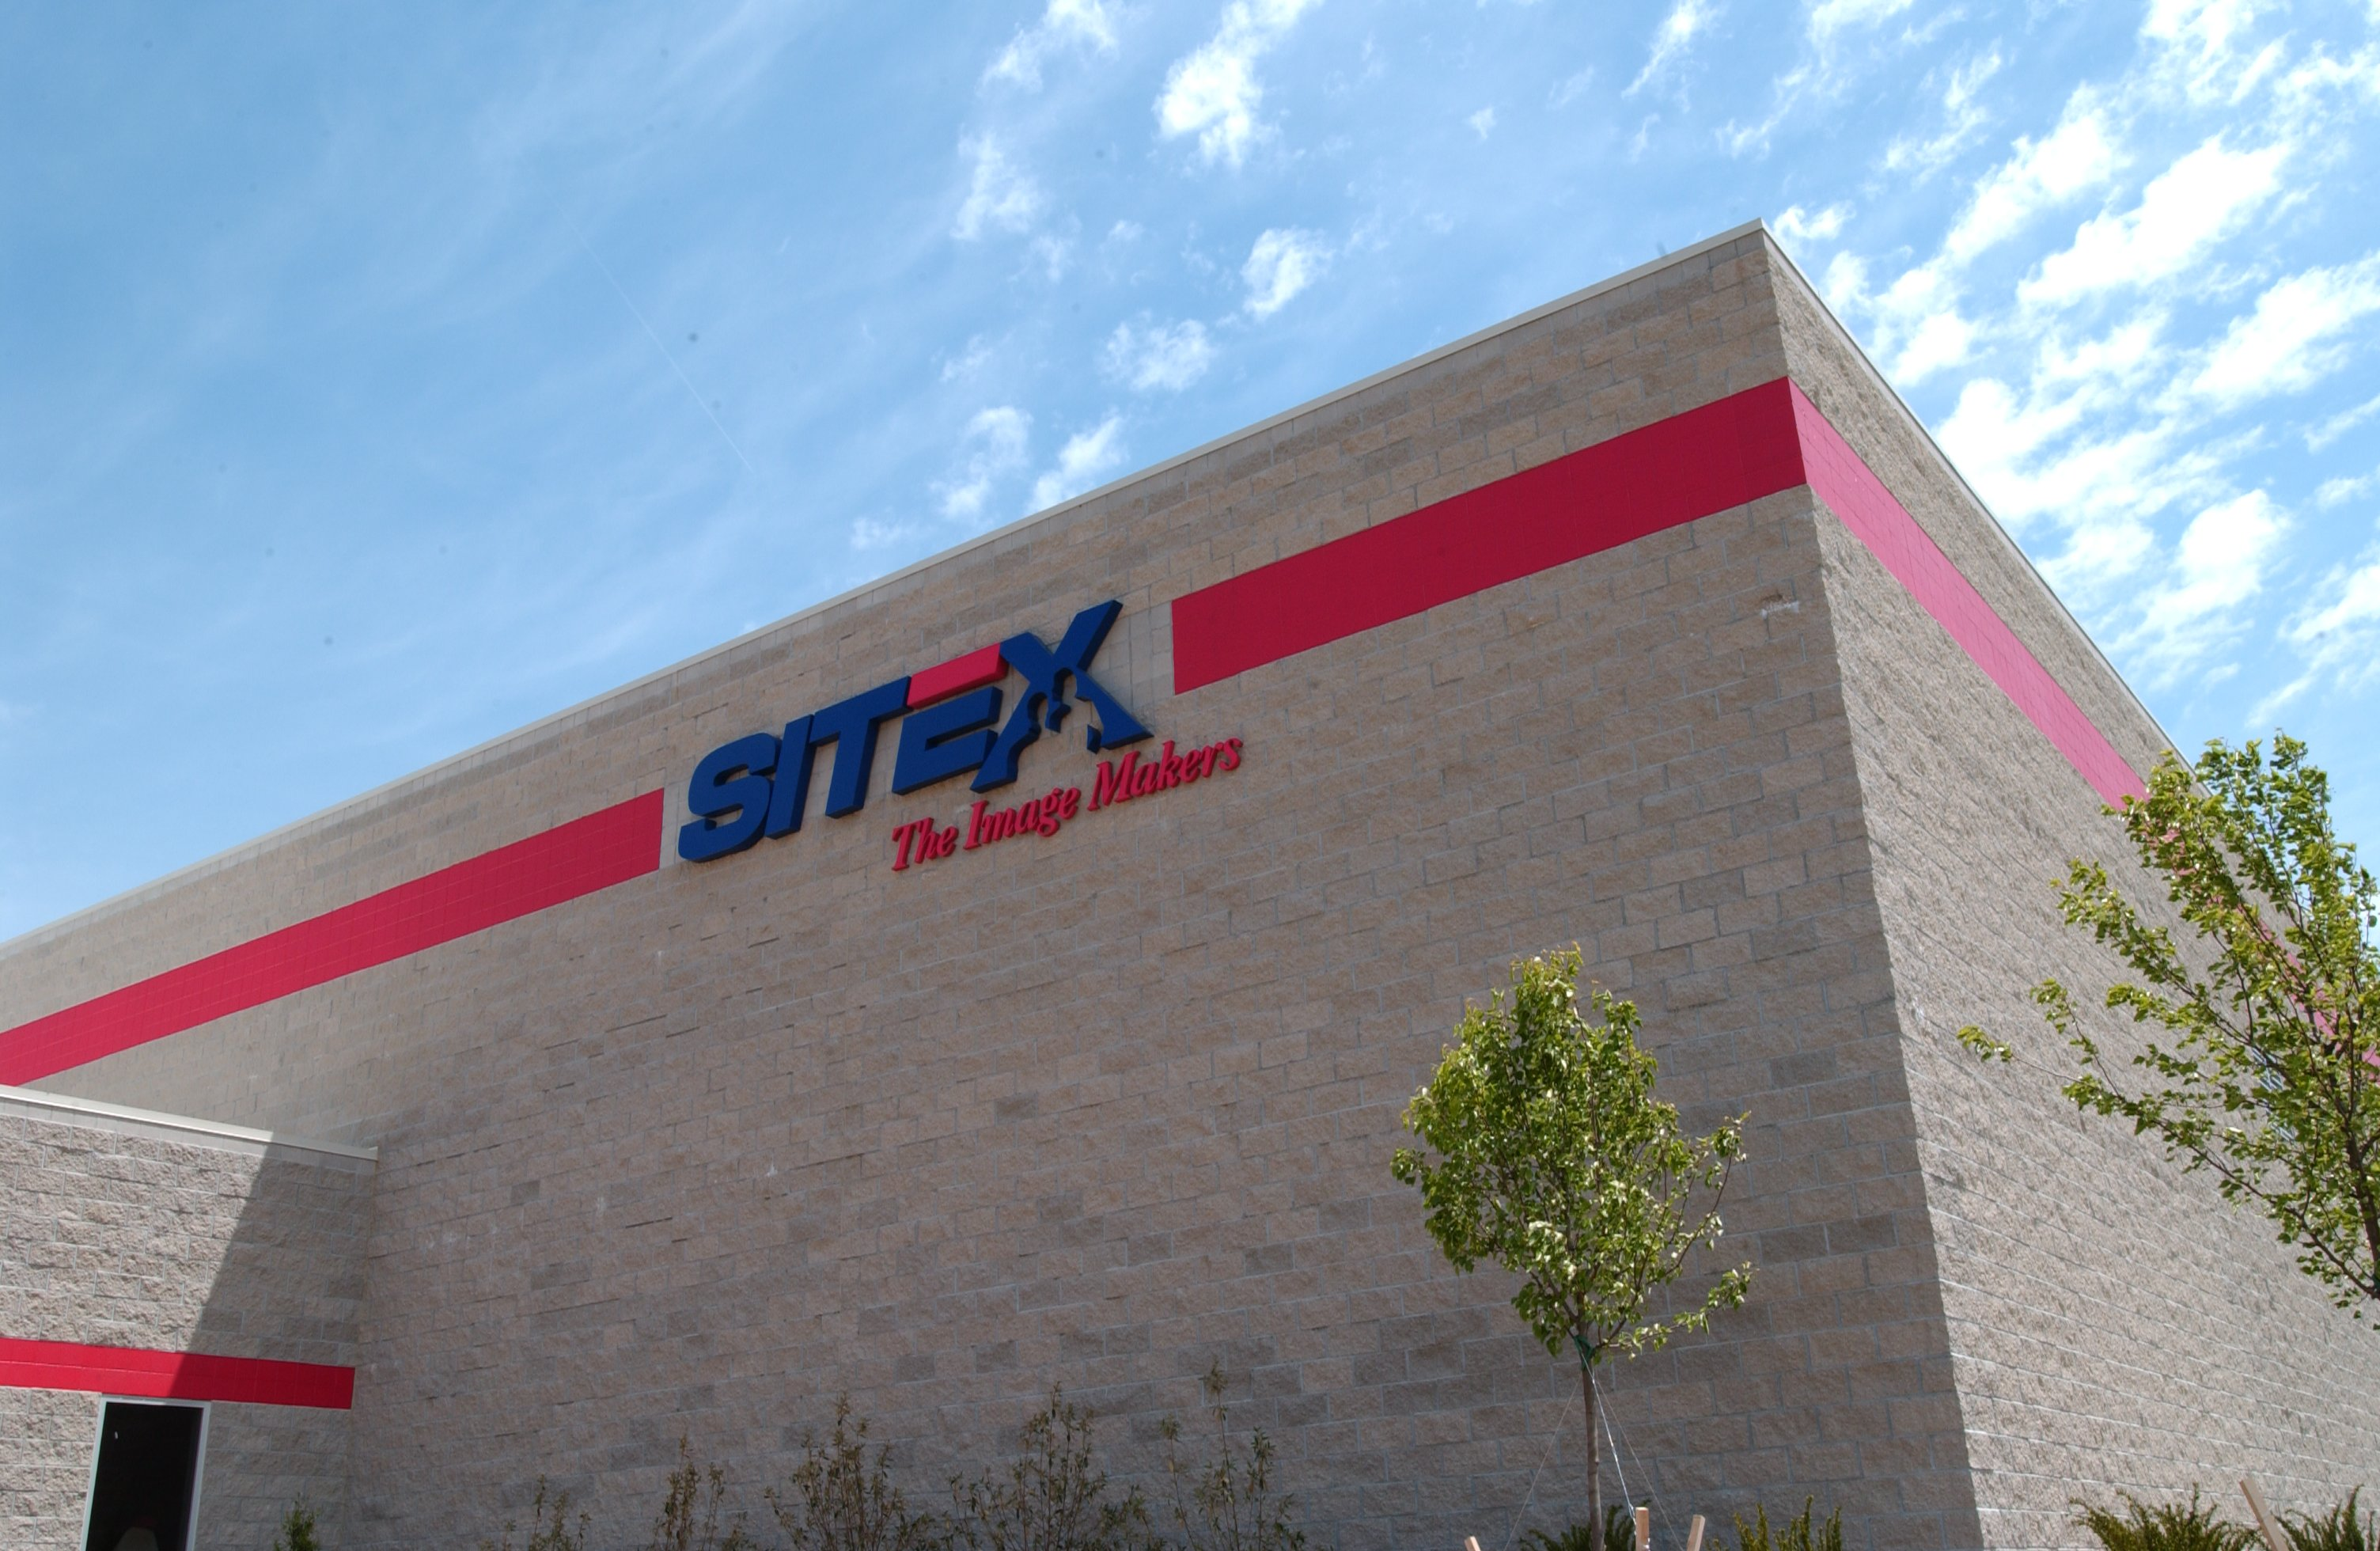 Outside the SITEX facility